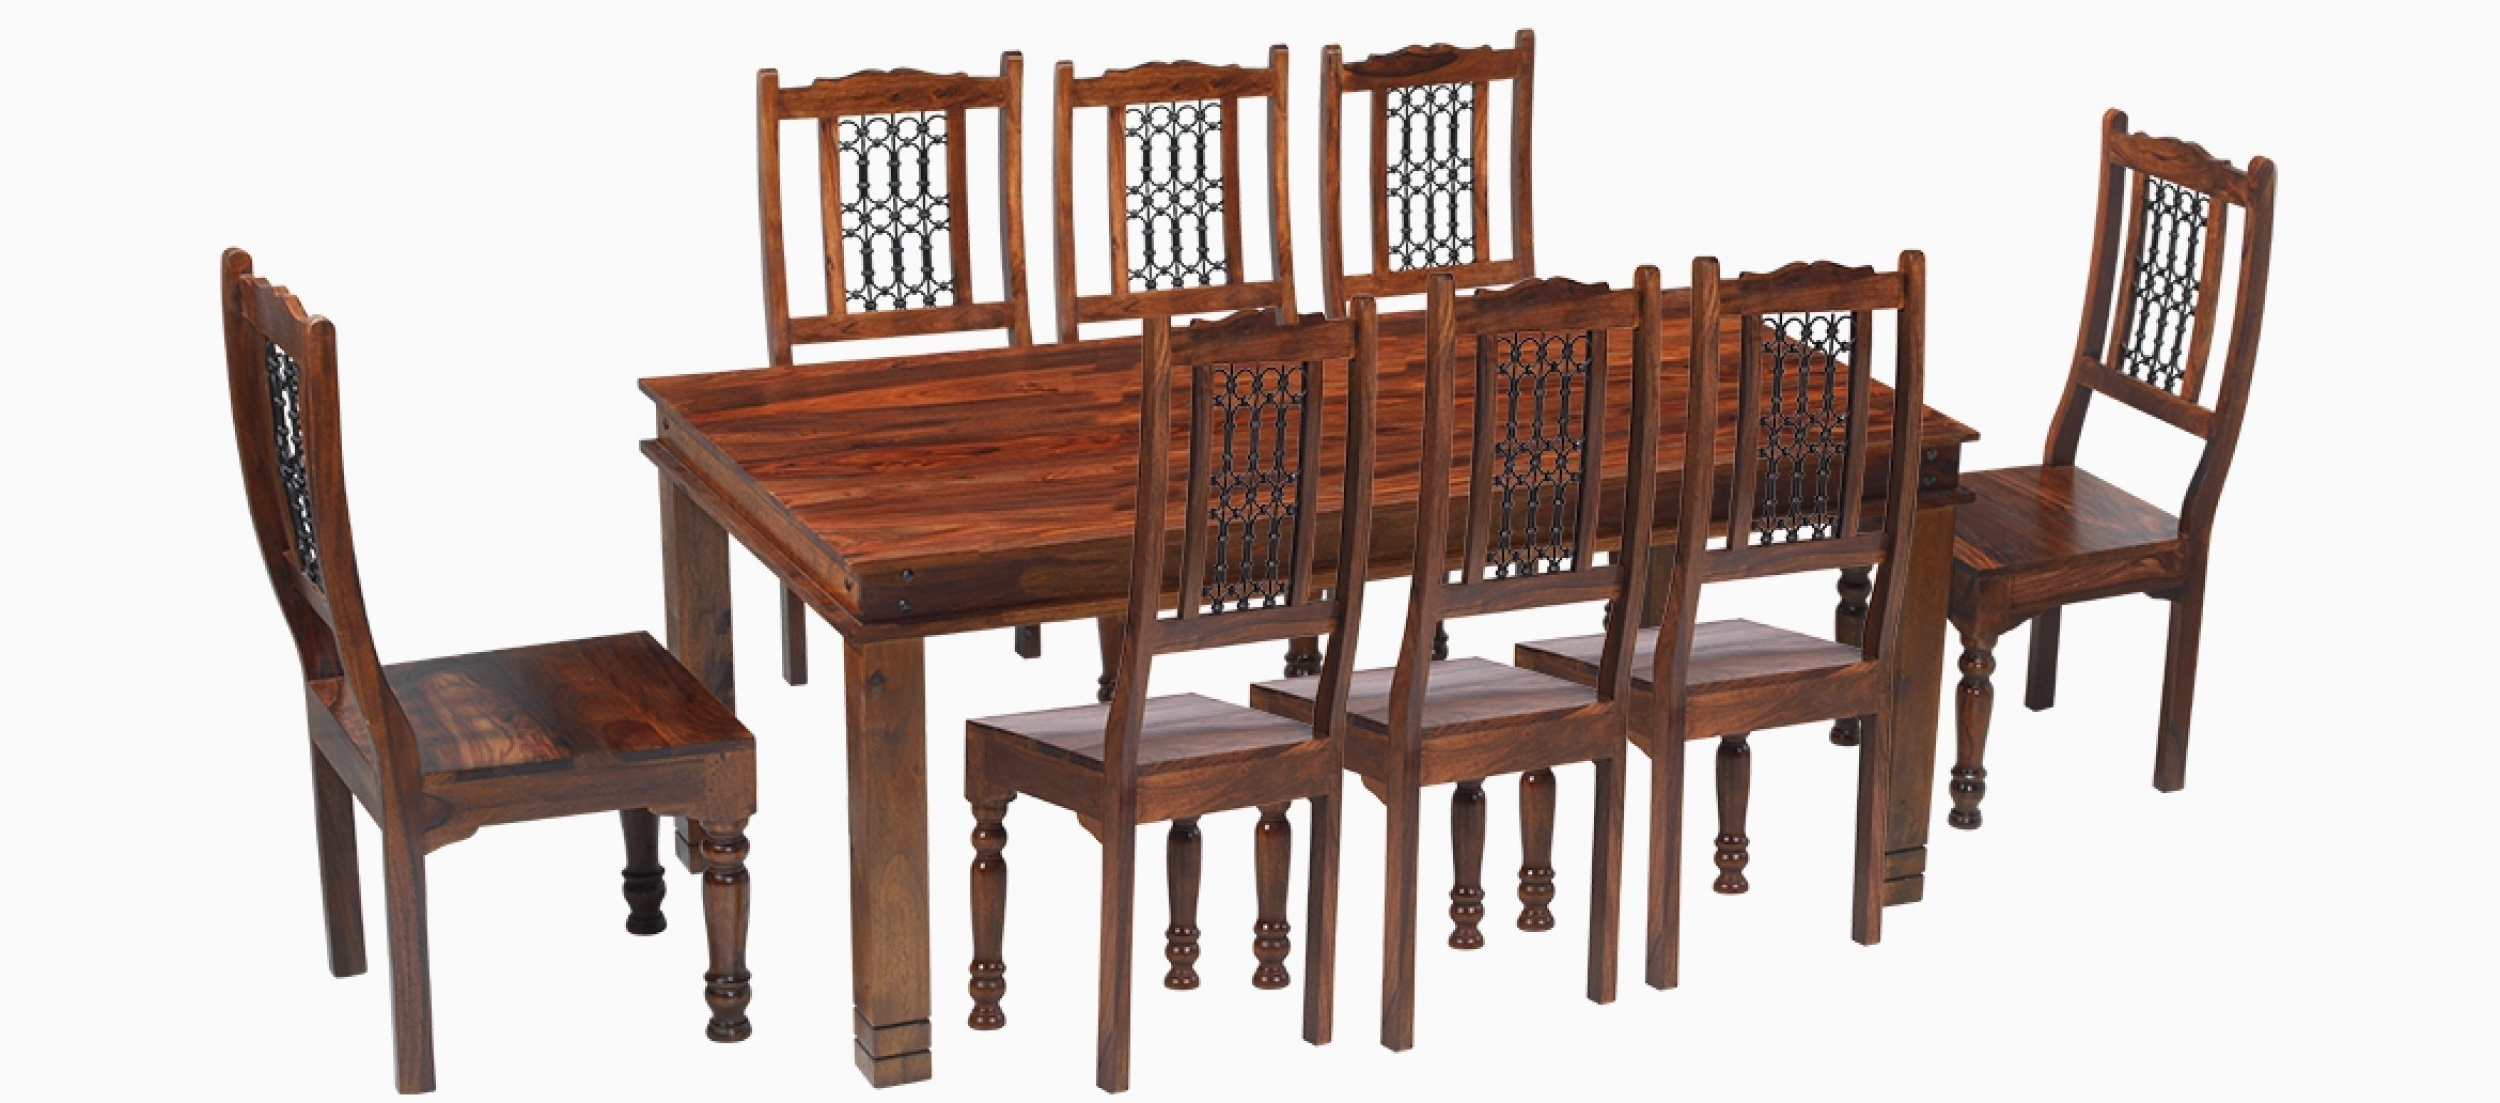 Dining Table And 8 Chairs For Sale Elegant Excellent Elegant Dining Throughout Well Known Dining Tables And 8 Chairs For Sale (Gallery 14 of 25)